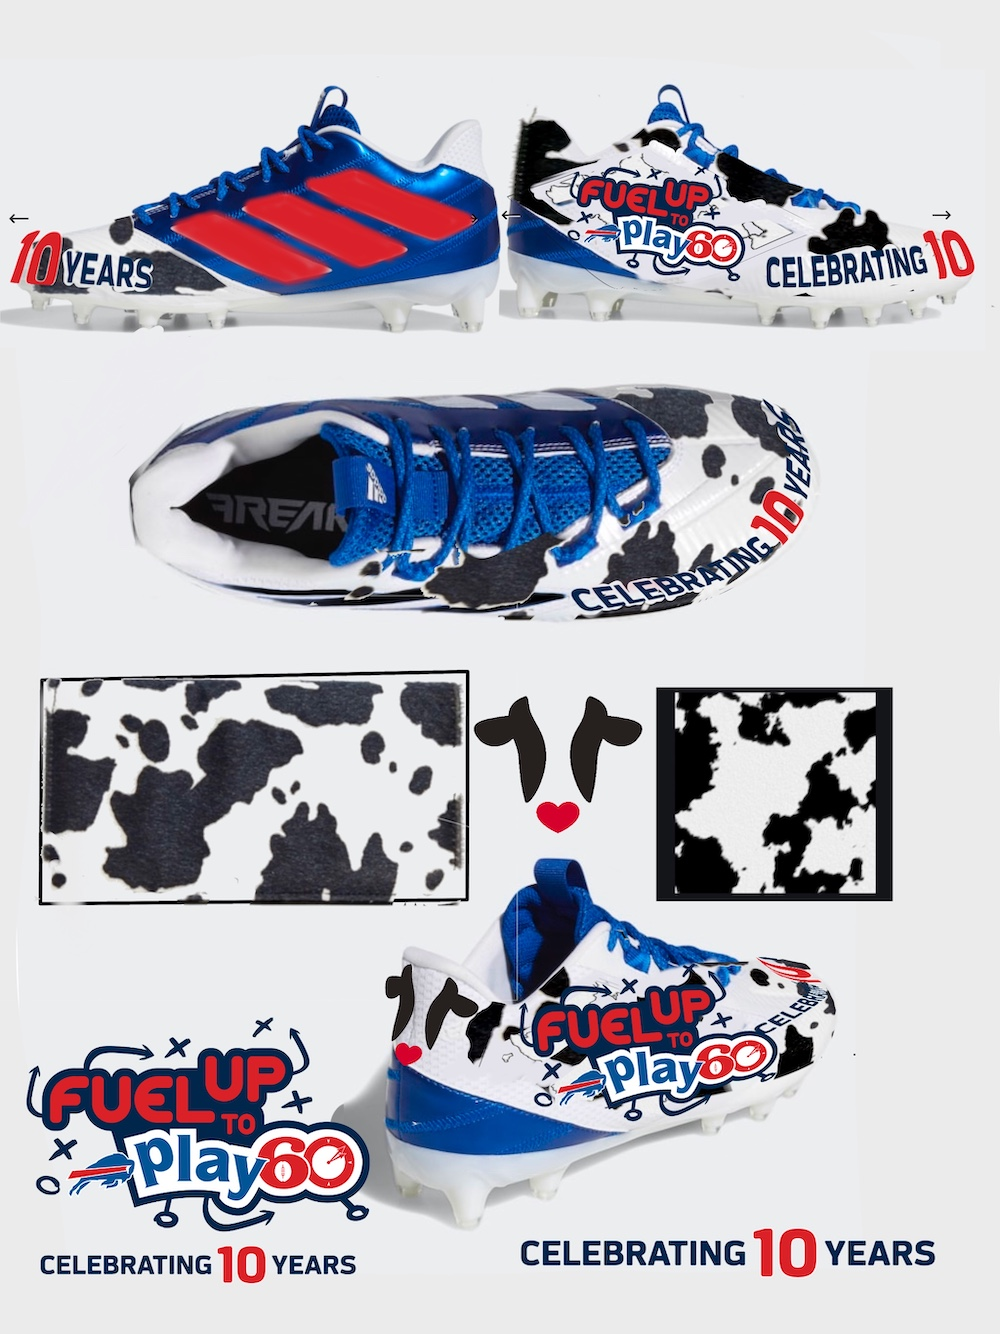 Fuel Up To Play 60 Cleat Design